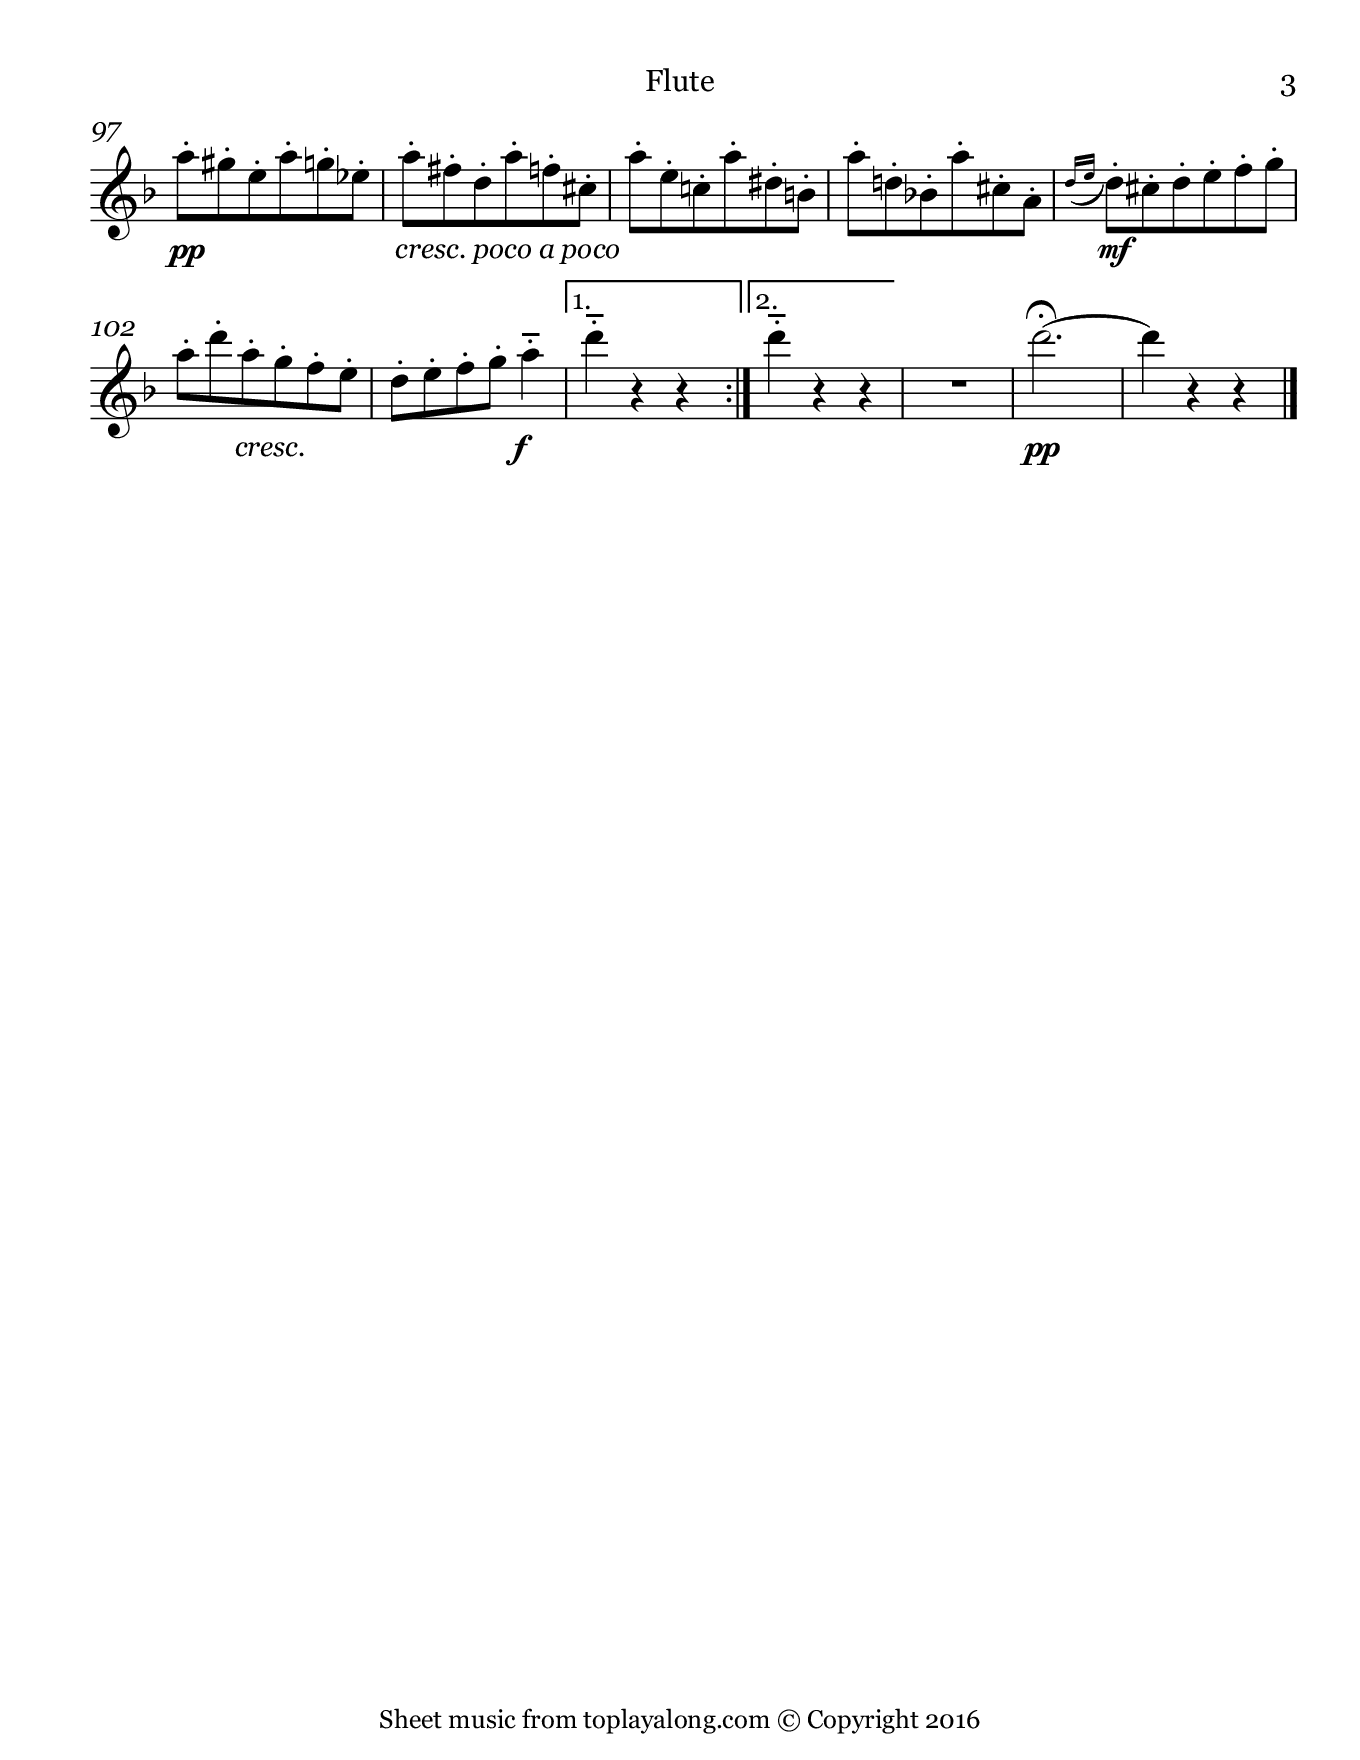 Anitra's Dance from Peer Gynt by Grieg. Sheet music for Flute, page 3.